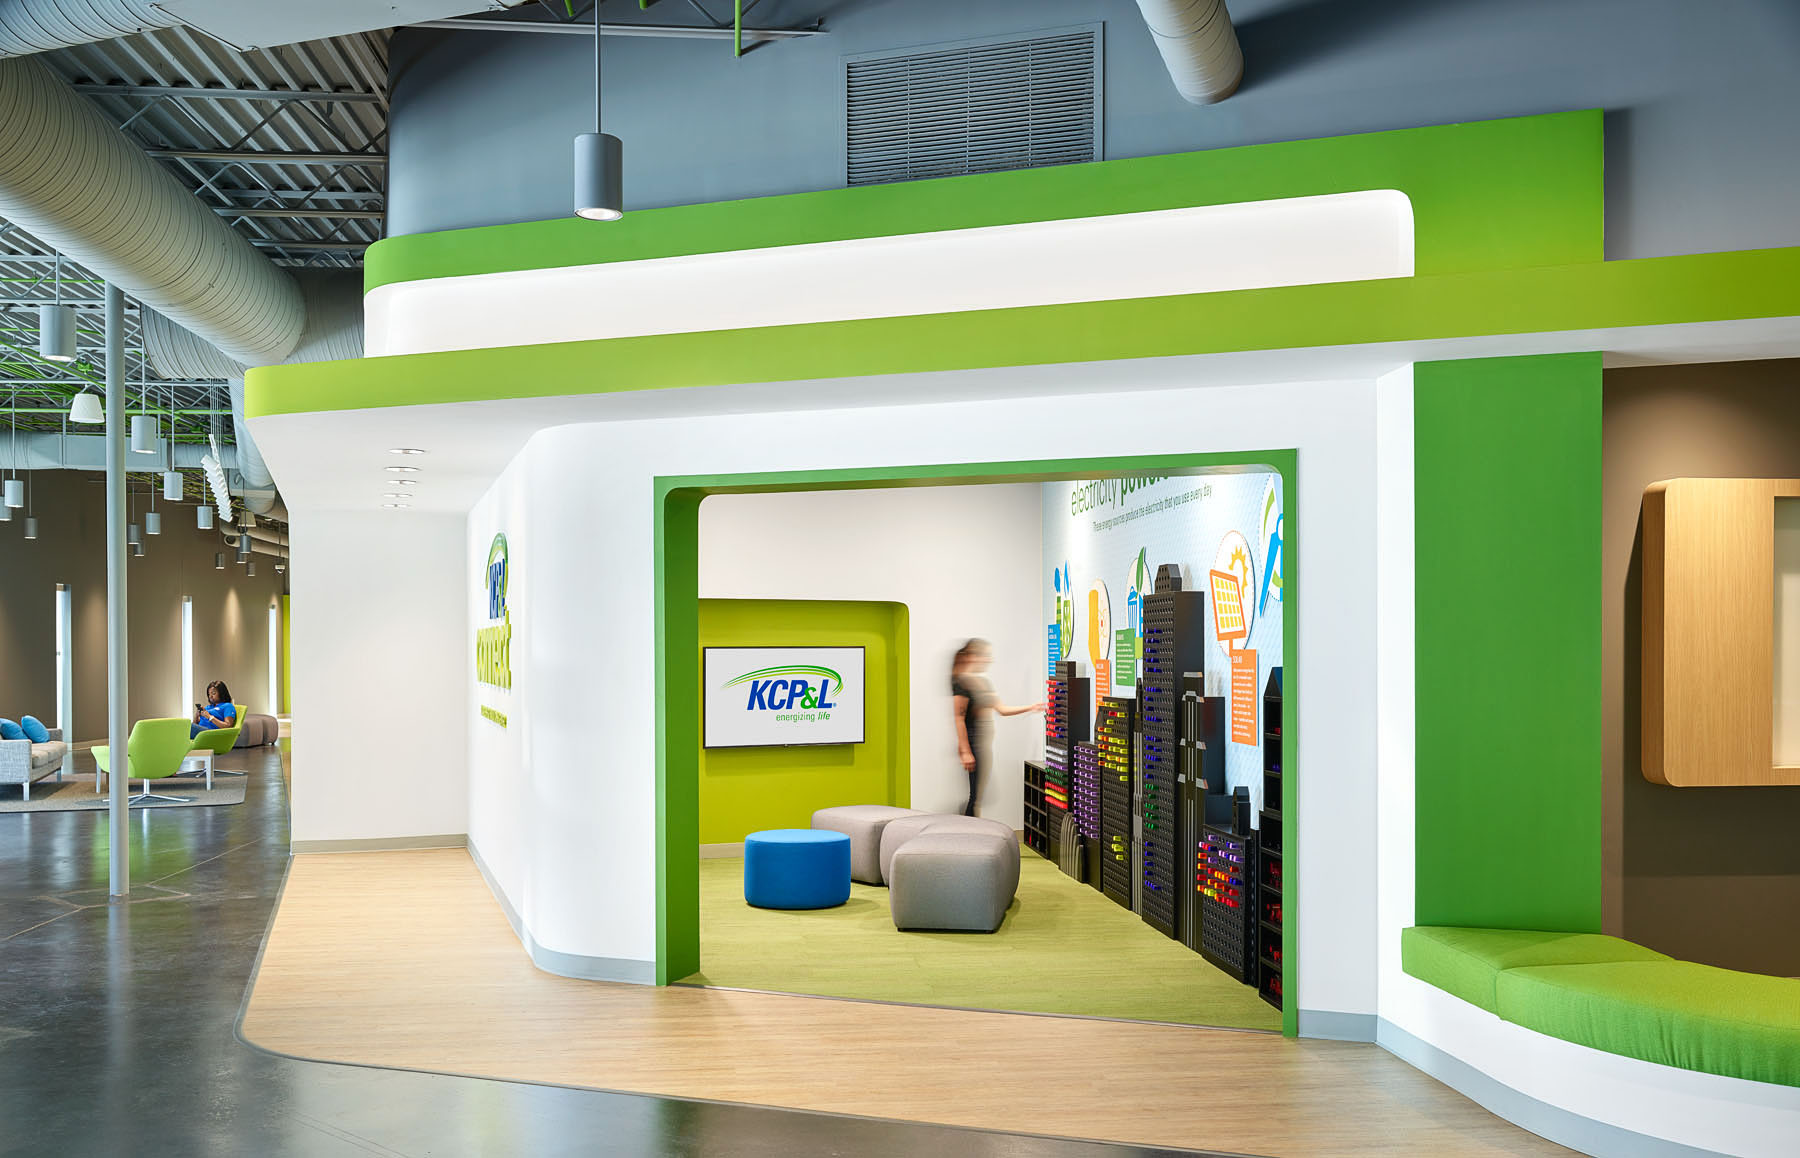 HOK_KCPLConnect8468_LR_RNH